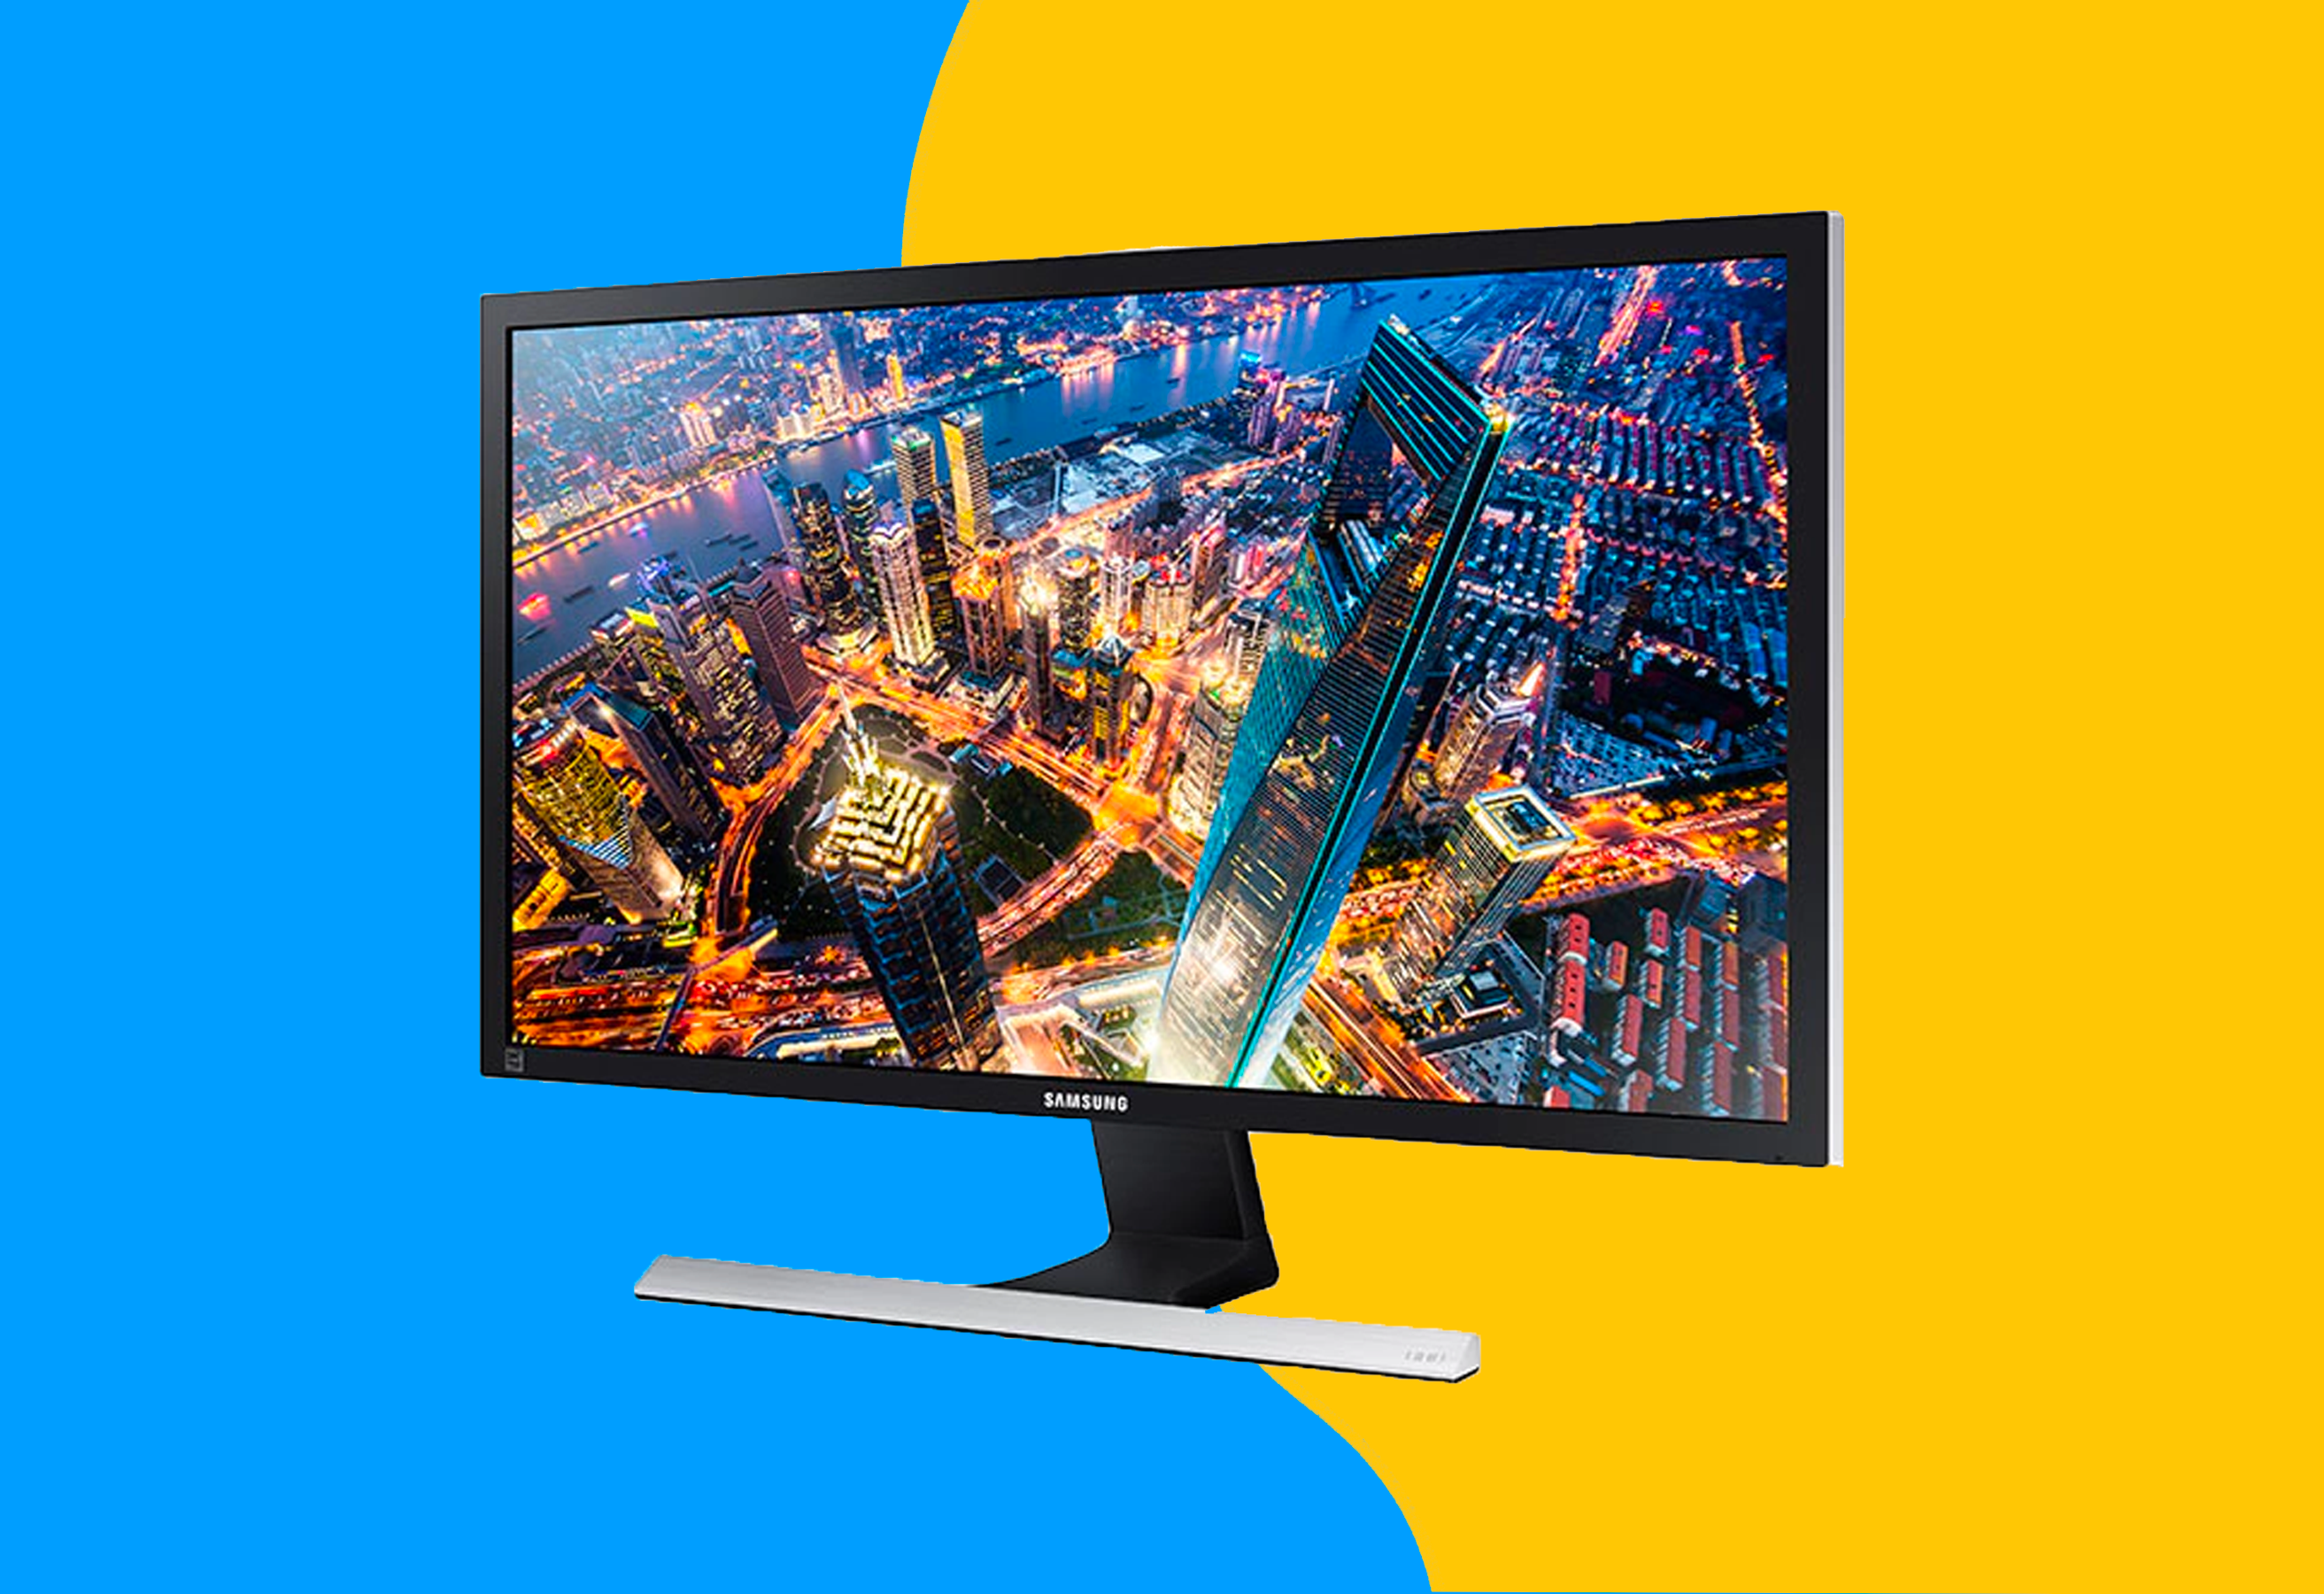 Get an epic deal on a UHD monitor during the Samsung Discover event